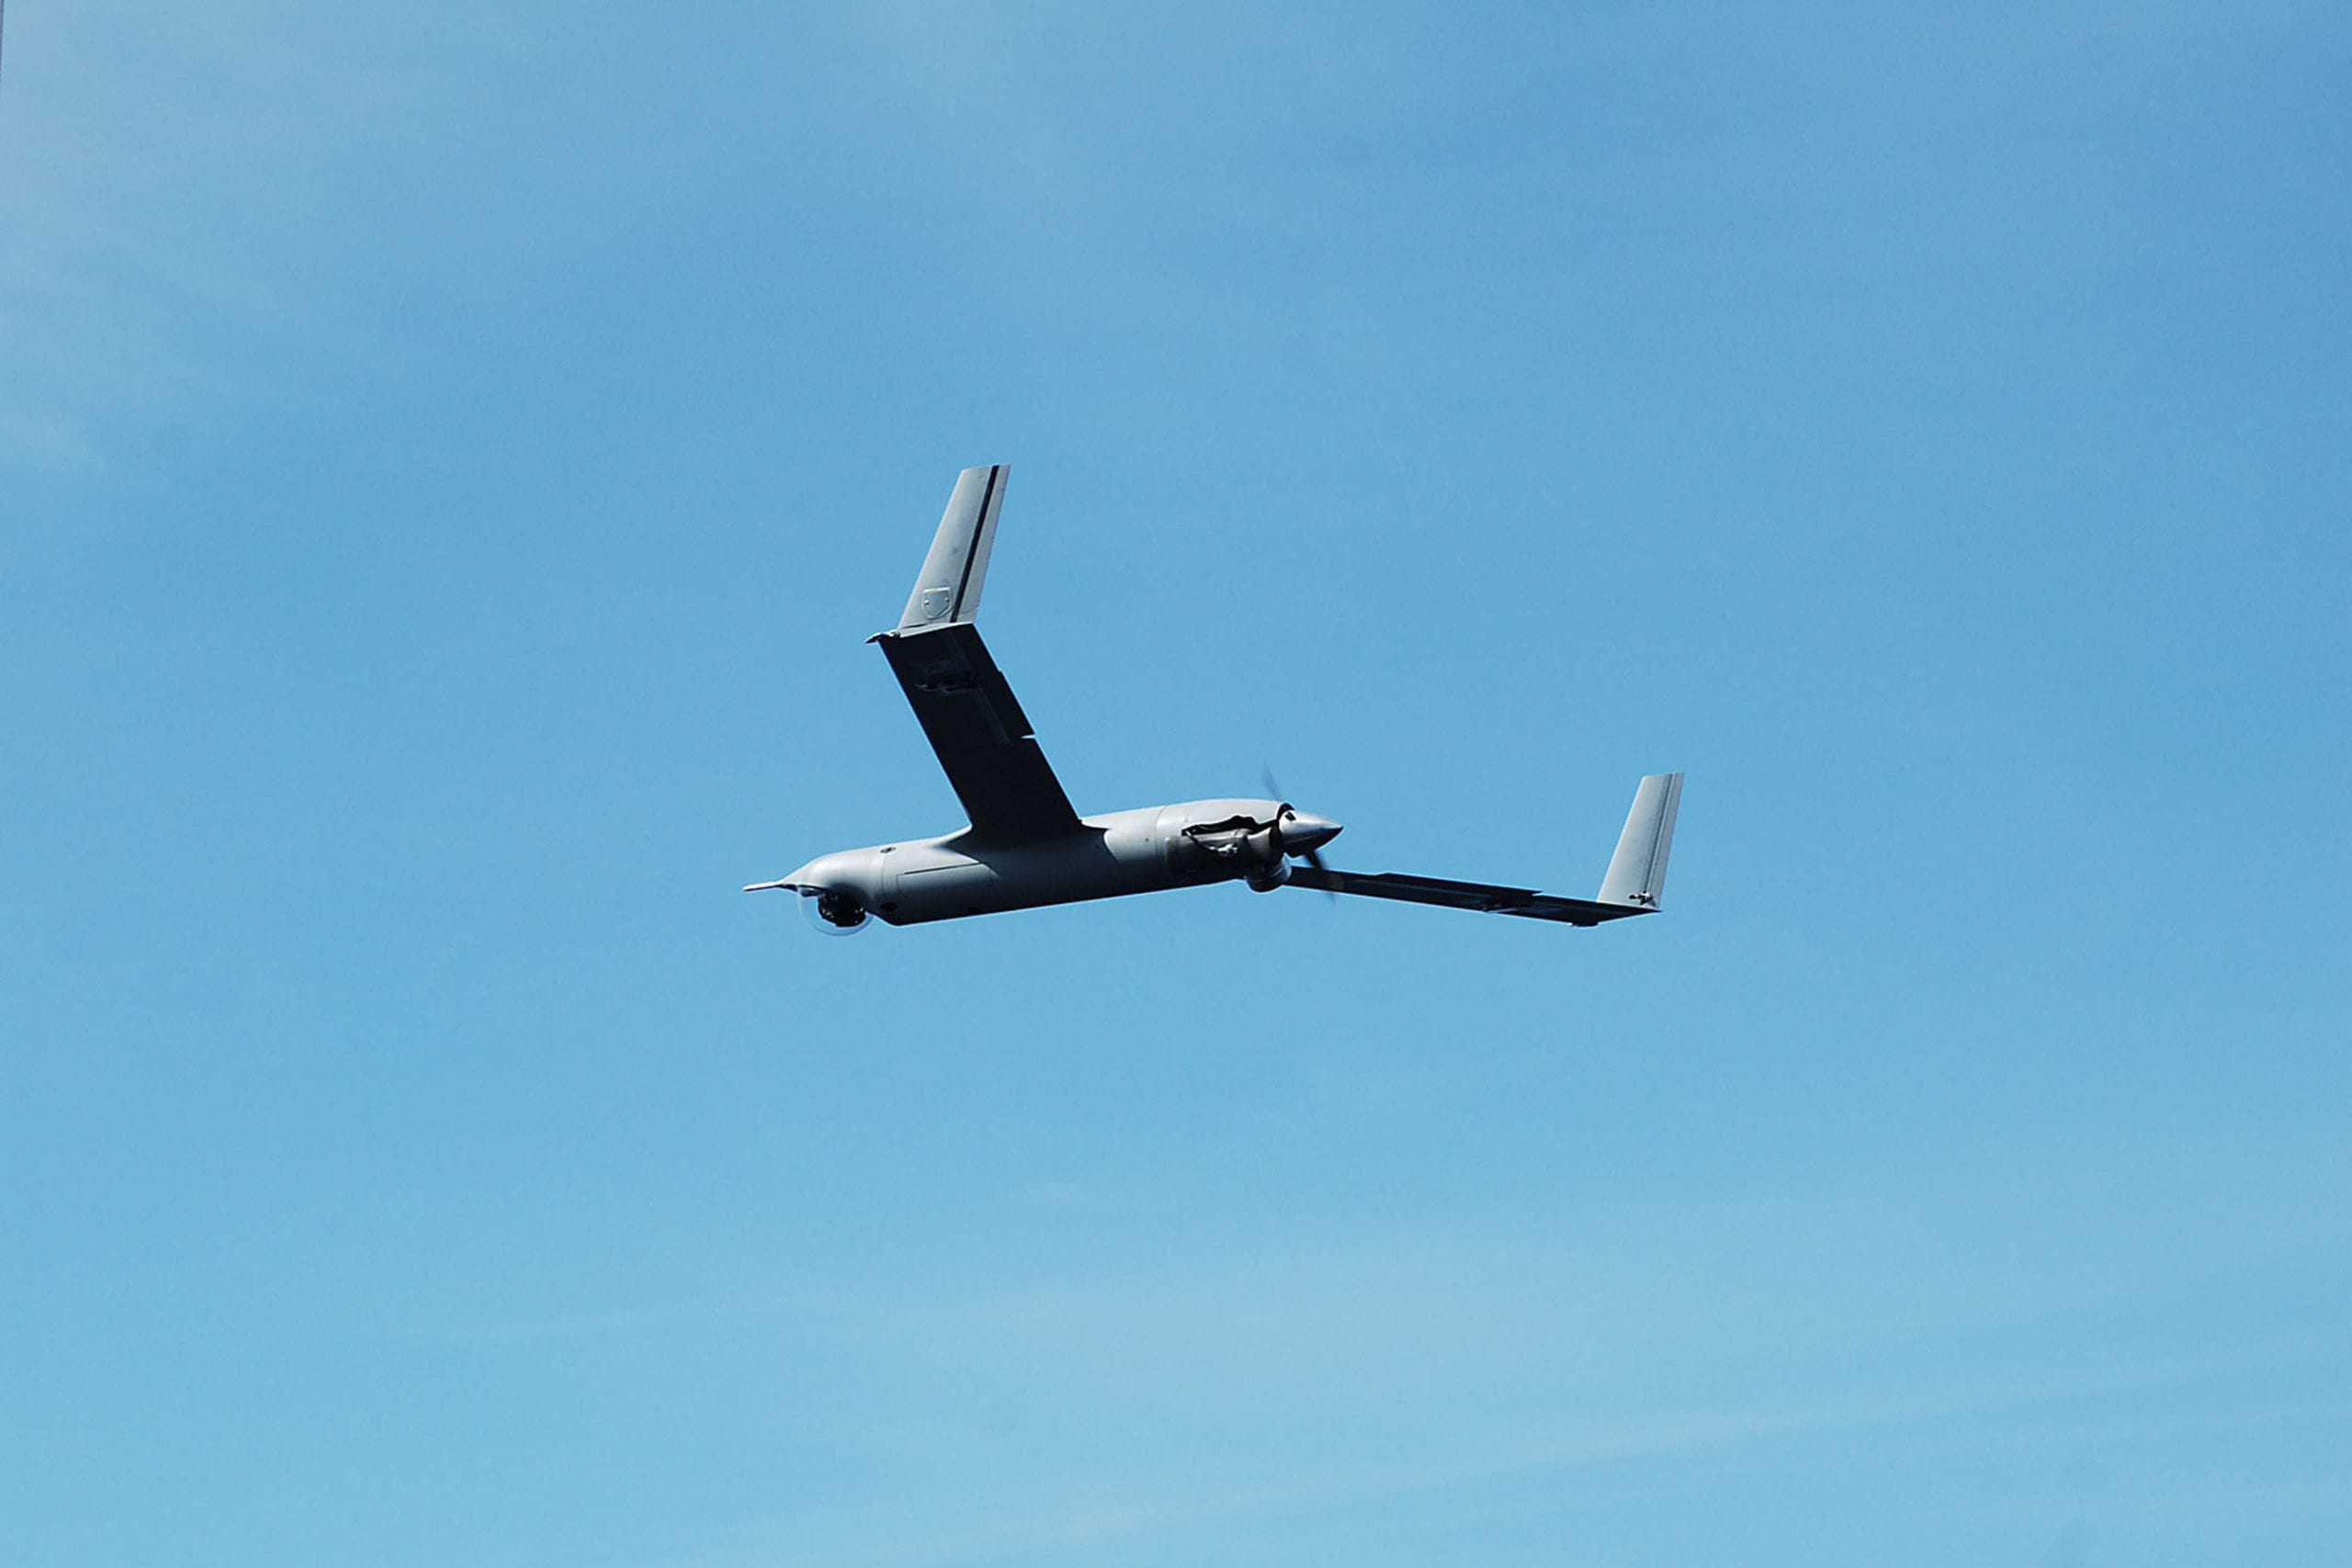 insitu scaneagle unmanned systems technology